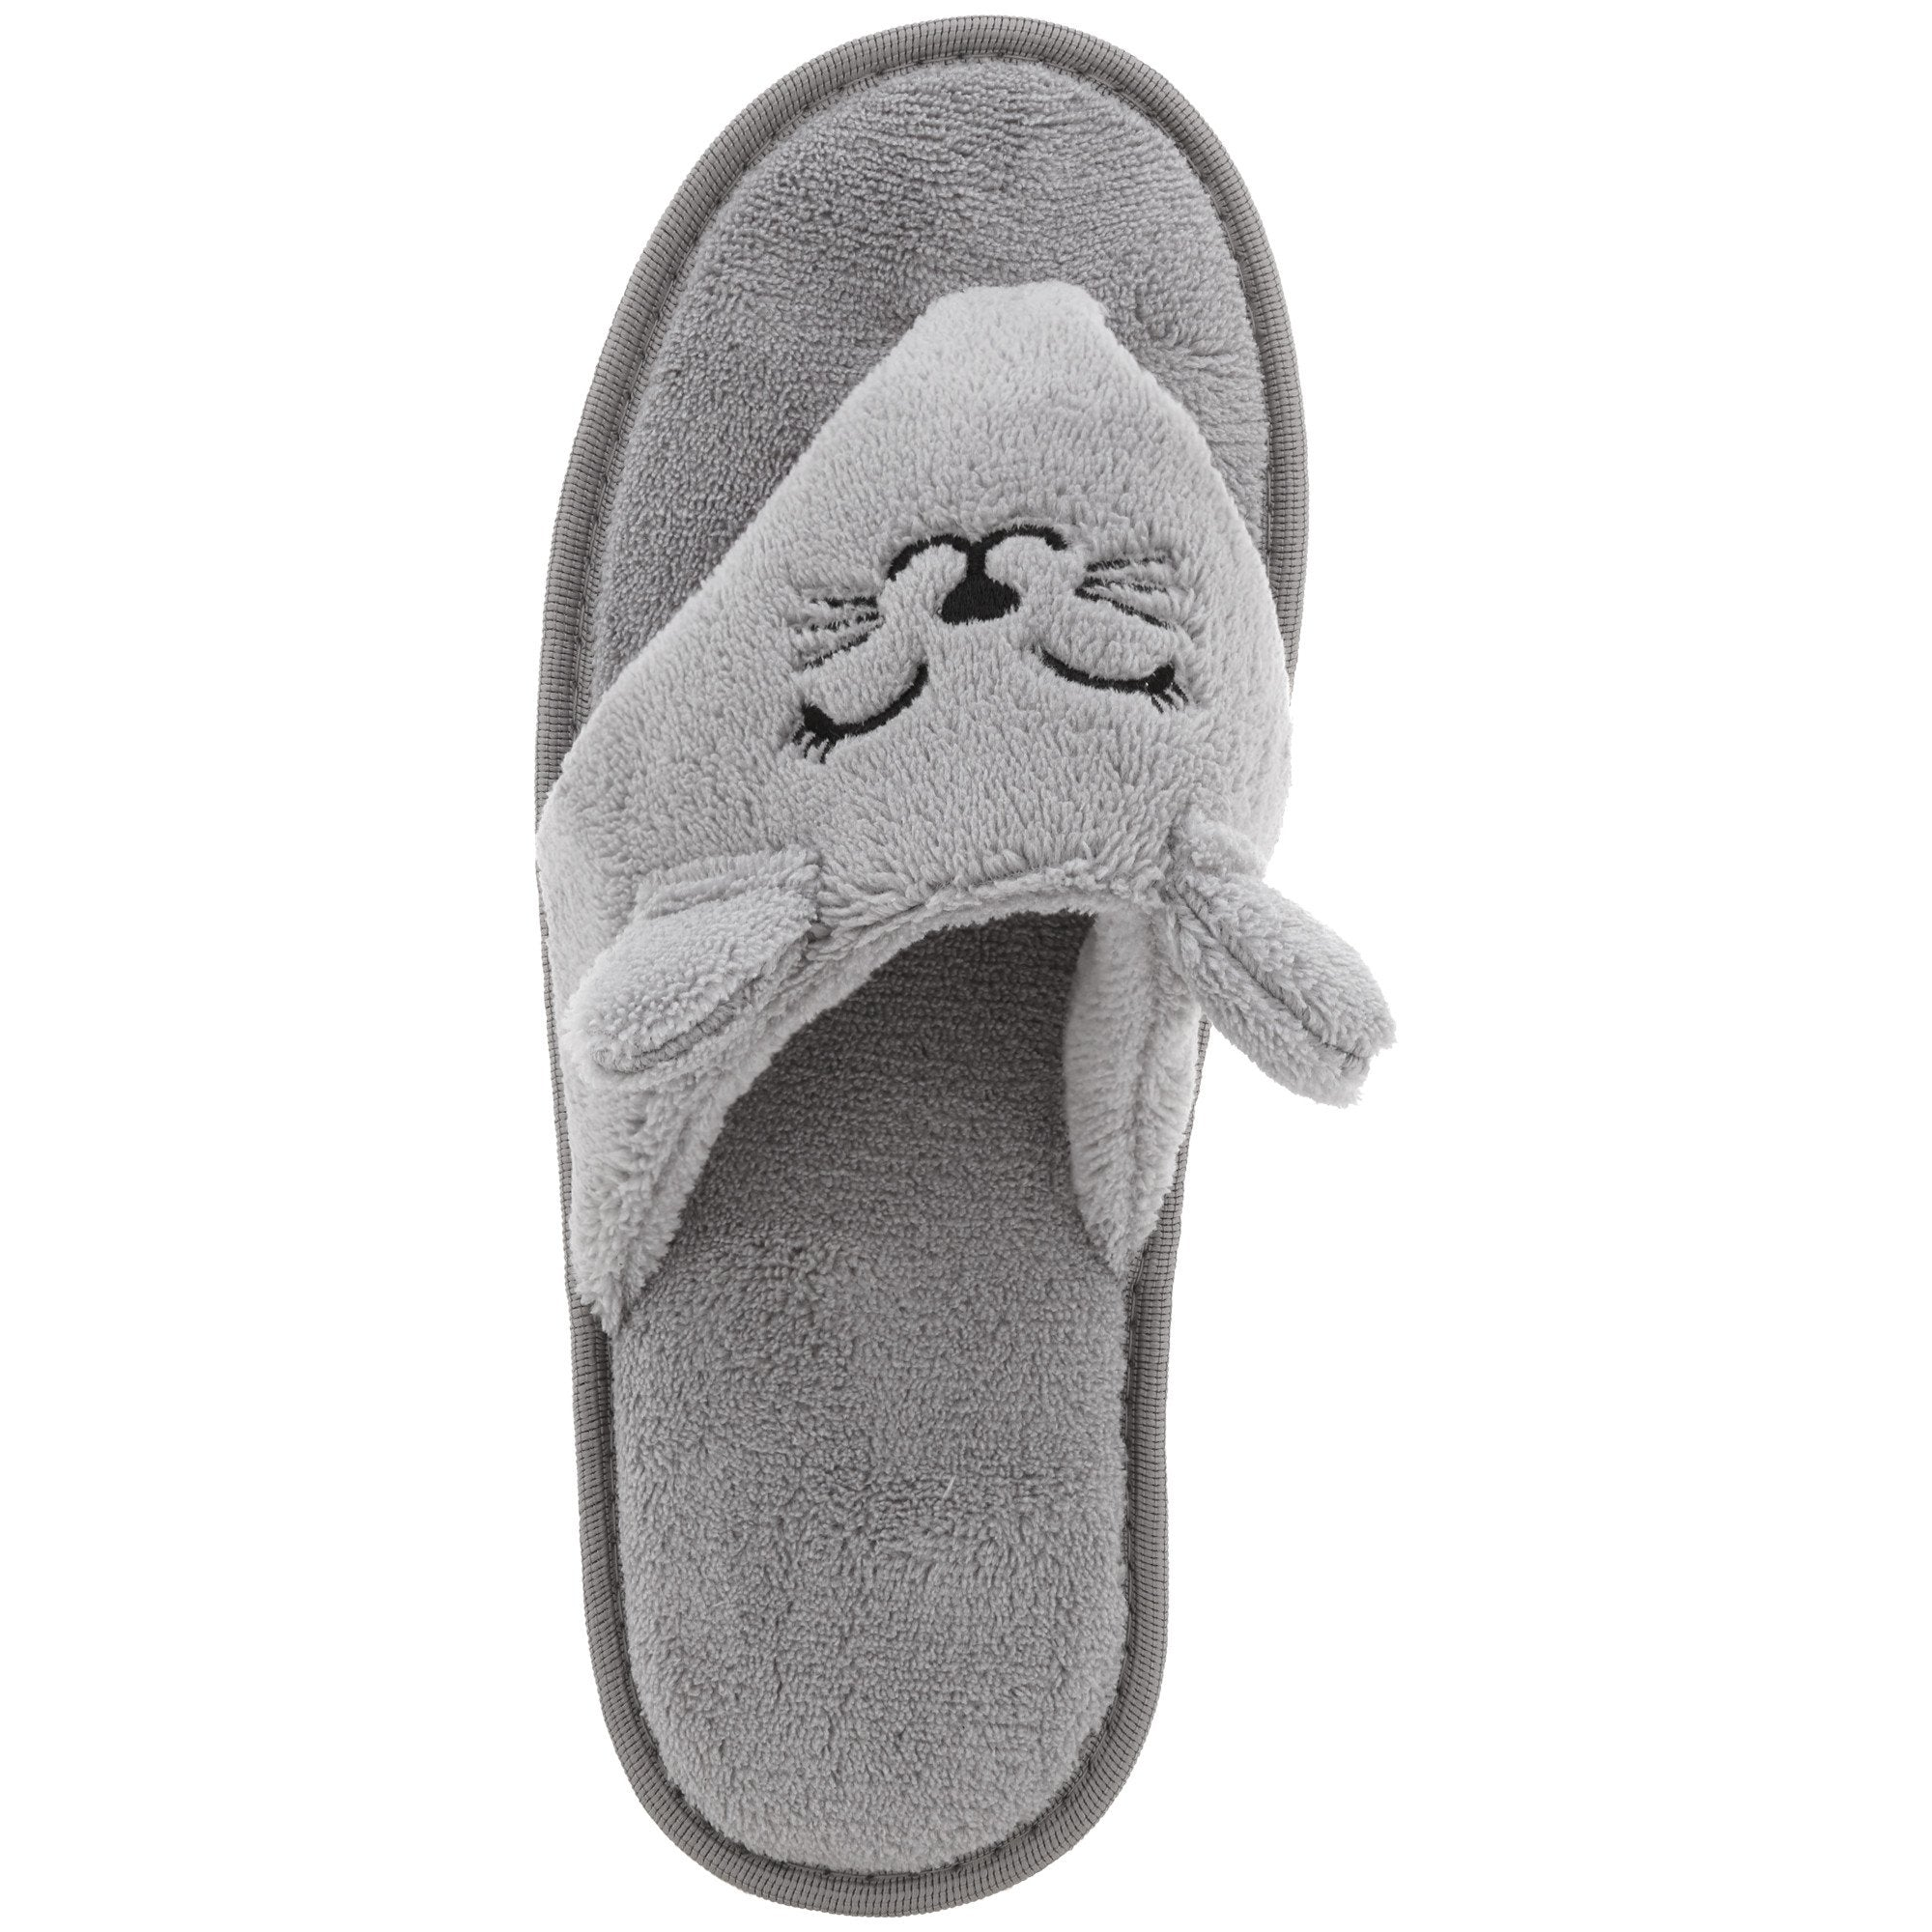 0cb82a00111f37 ... Kitty Love Cozy Flip Flop Slippers ...